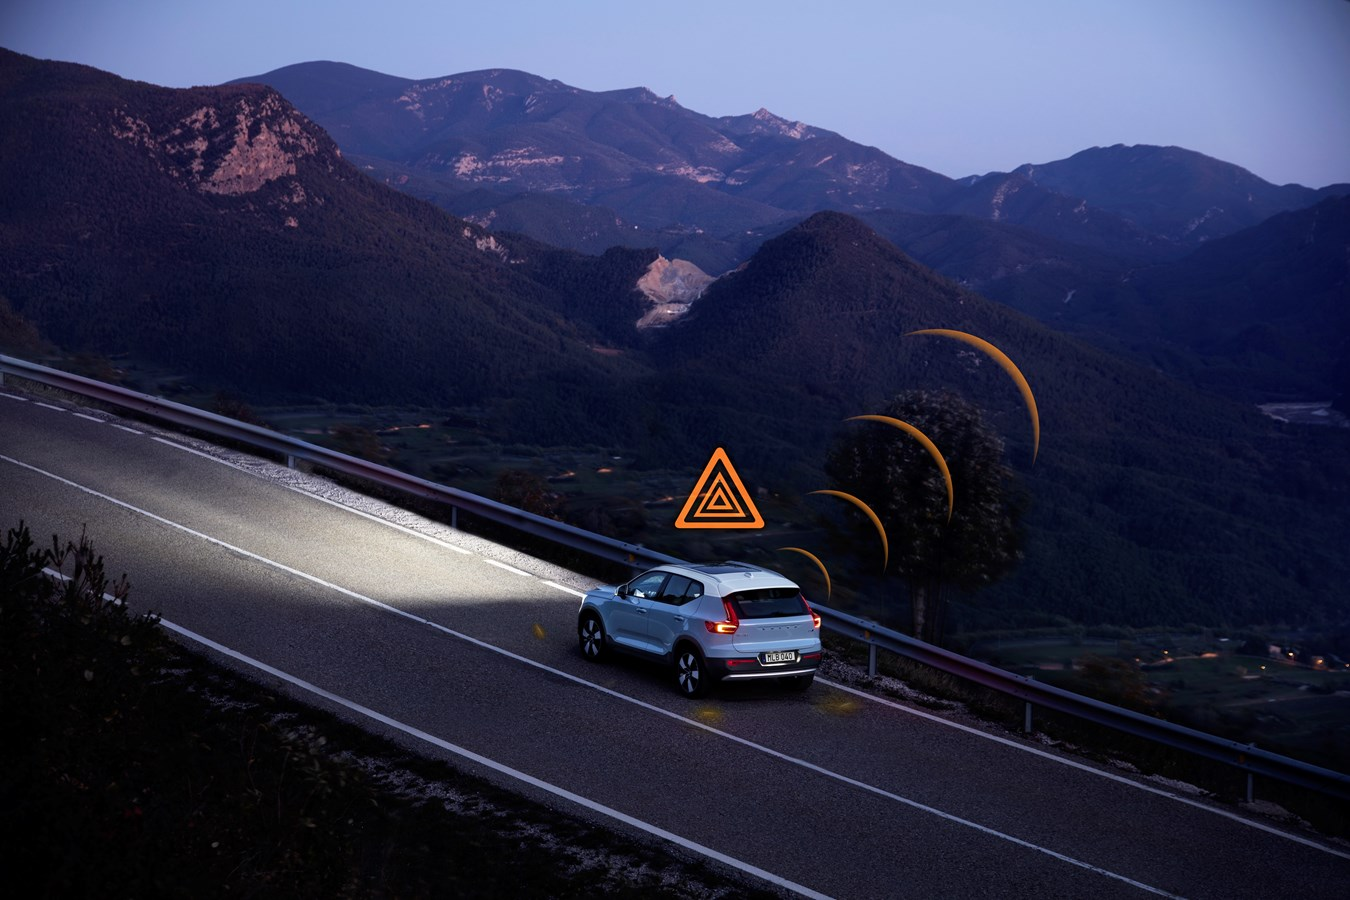 Rekor Subsidiary Waycare collaborates with Volvo Cars for AI-enabled Crash Prediction